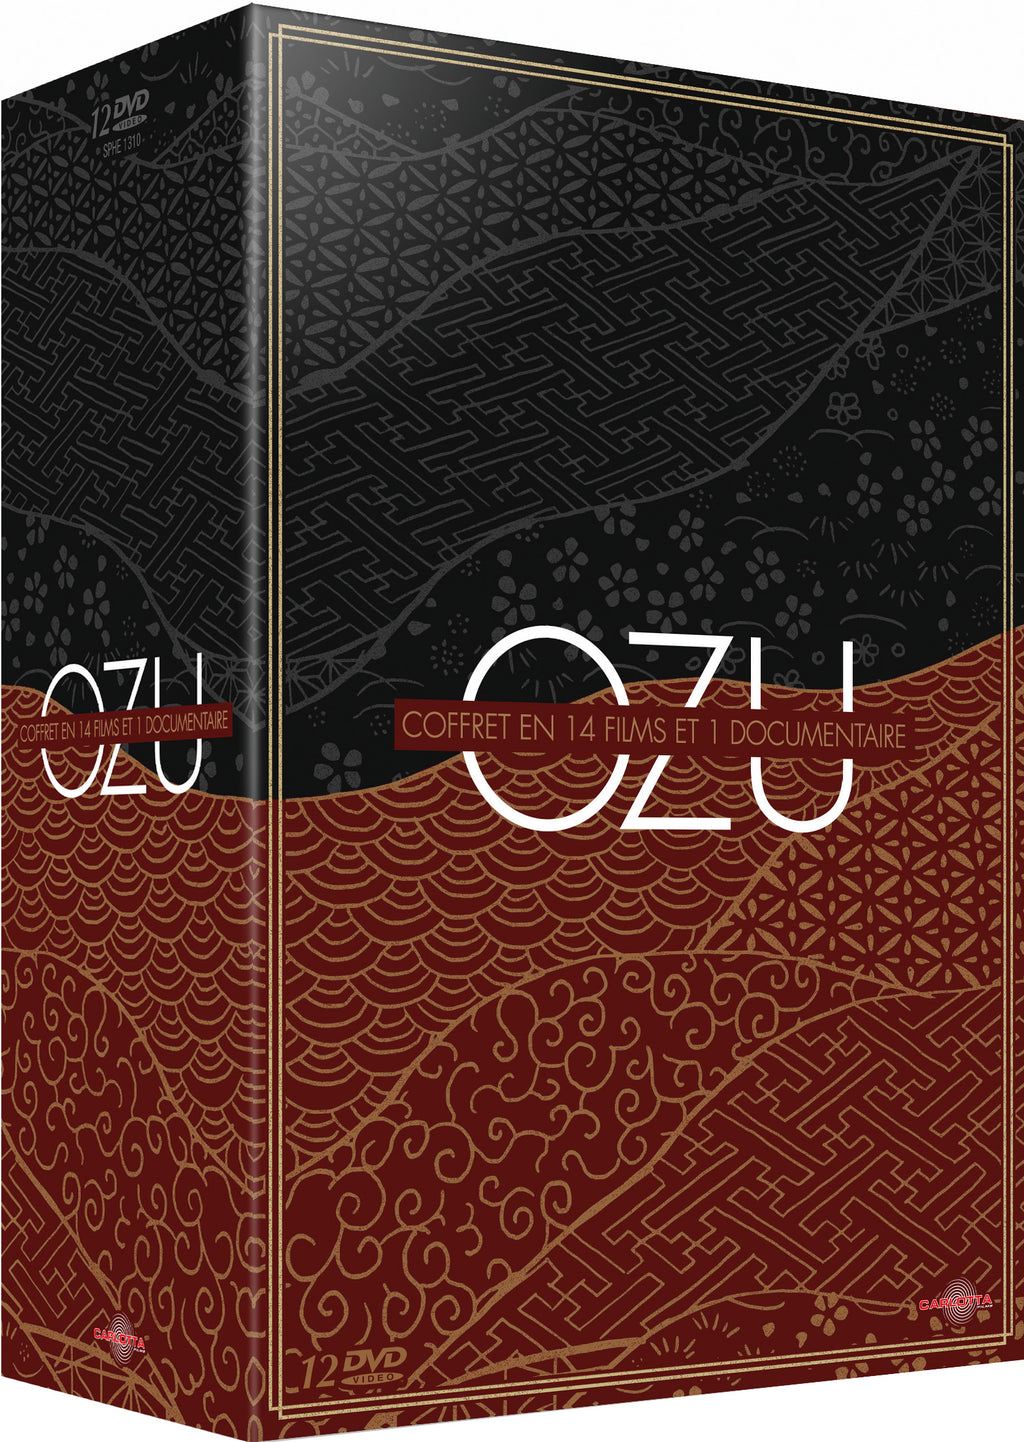 Ozu en 14 films et 1 documentaire - Coffret 12 DVD - Carlotta Films - La Boutique